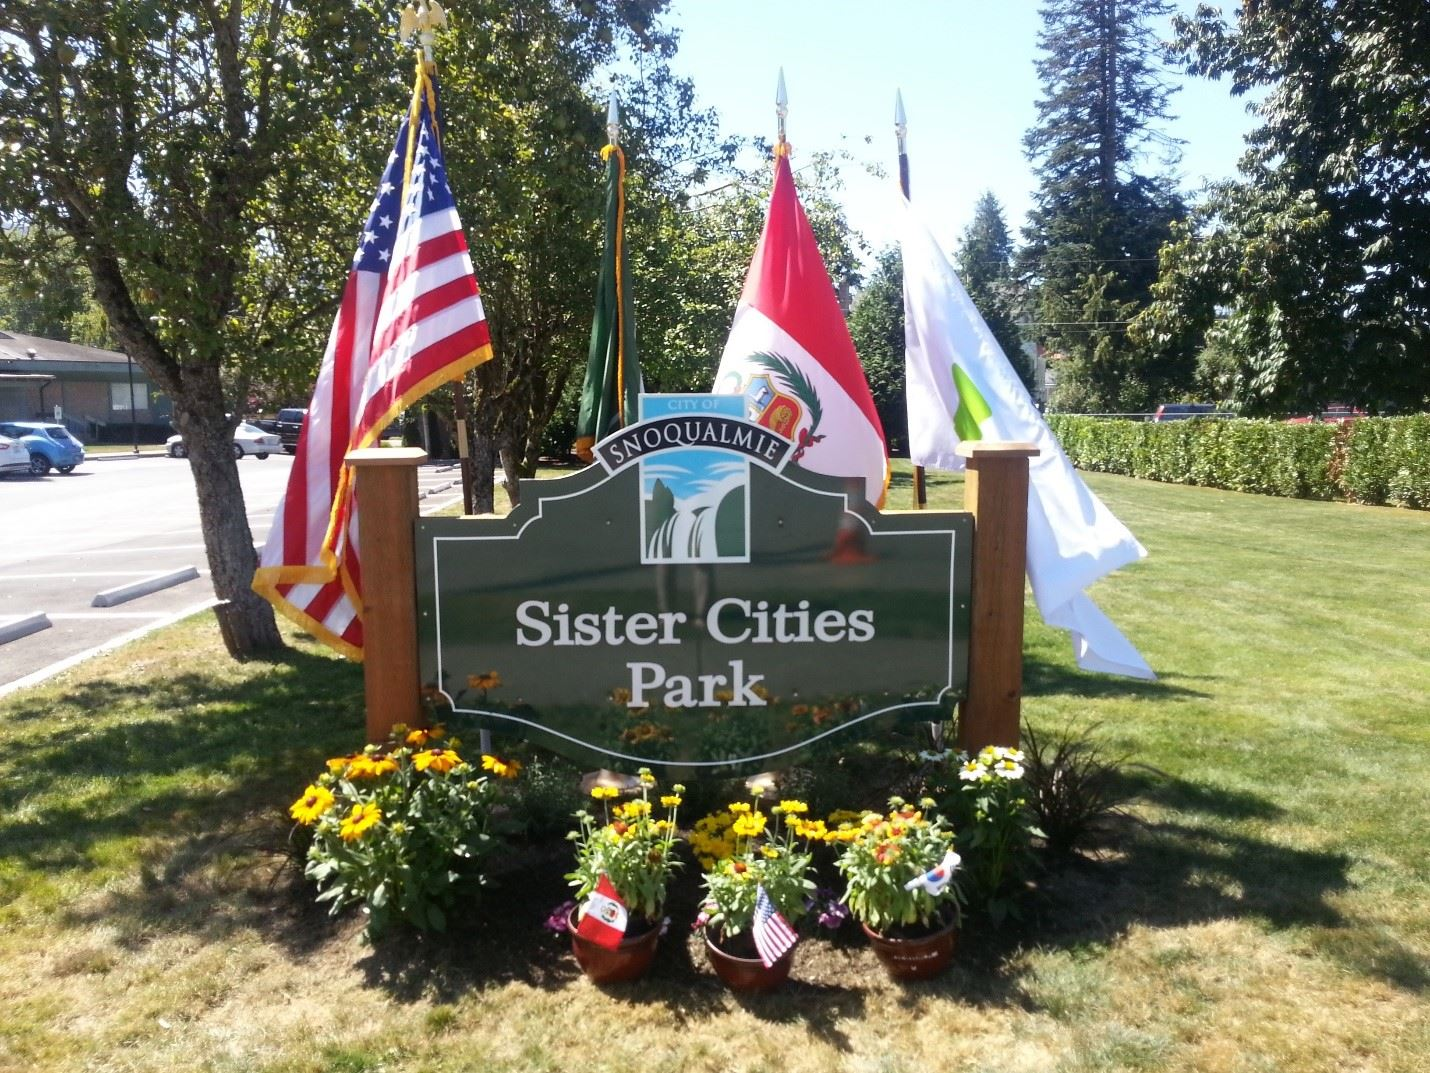 Sister Cities Park celebrates Snoqualmie's Sister City Relationships